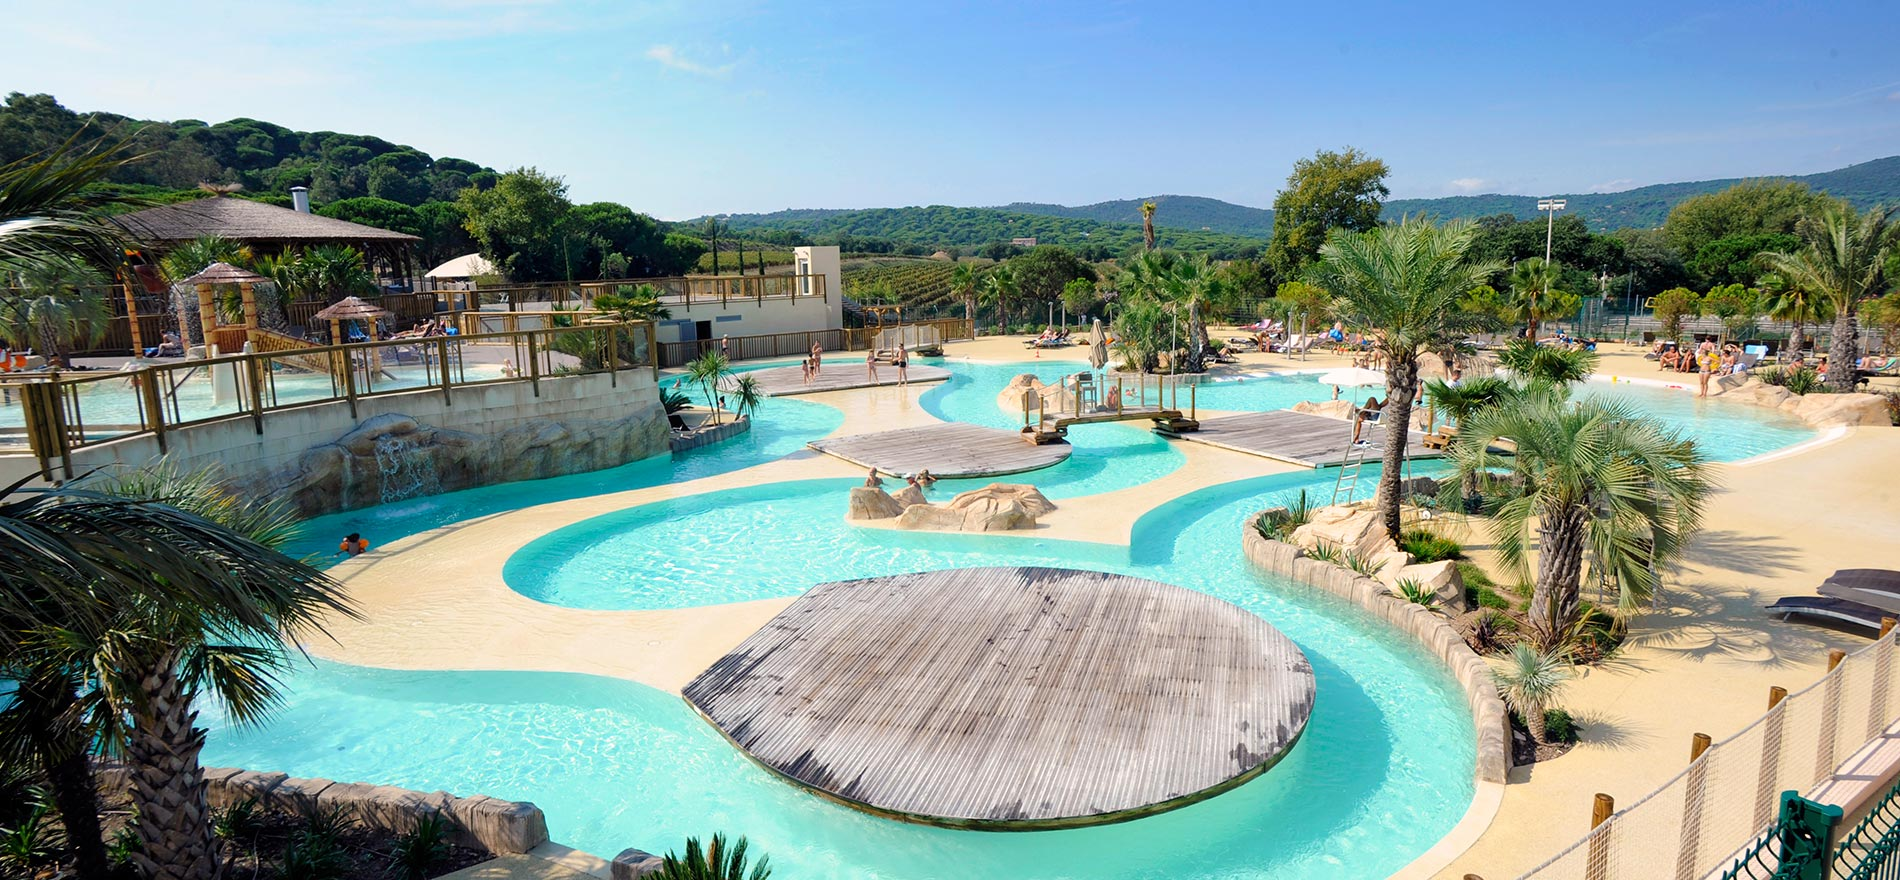 Camping st tropez camping martigues